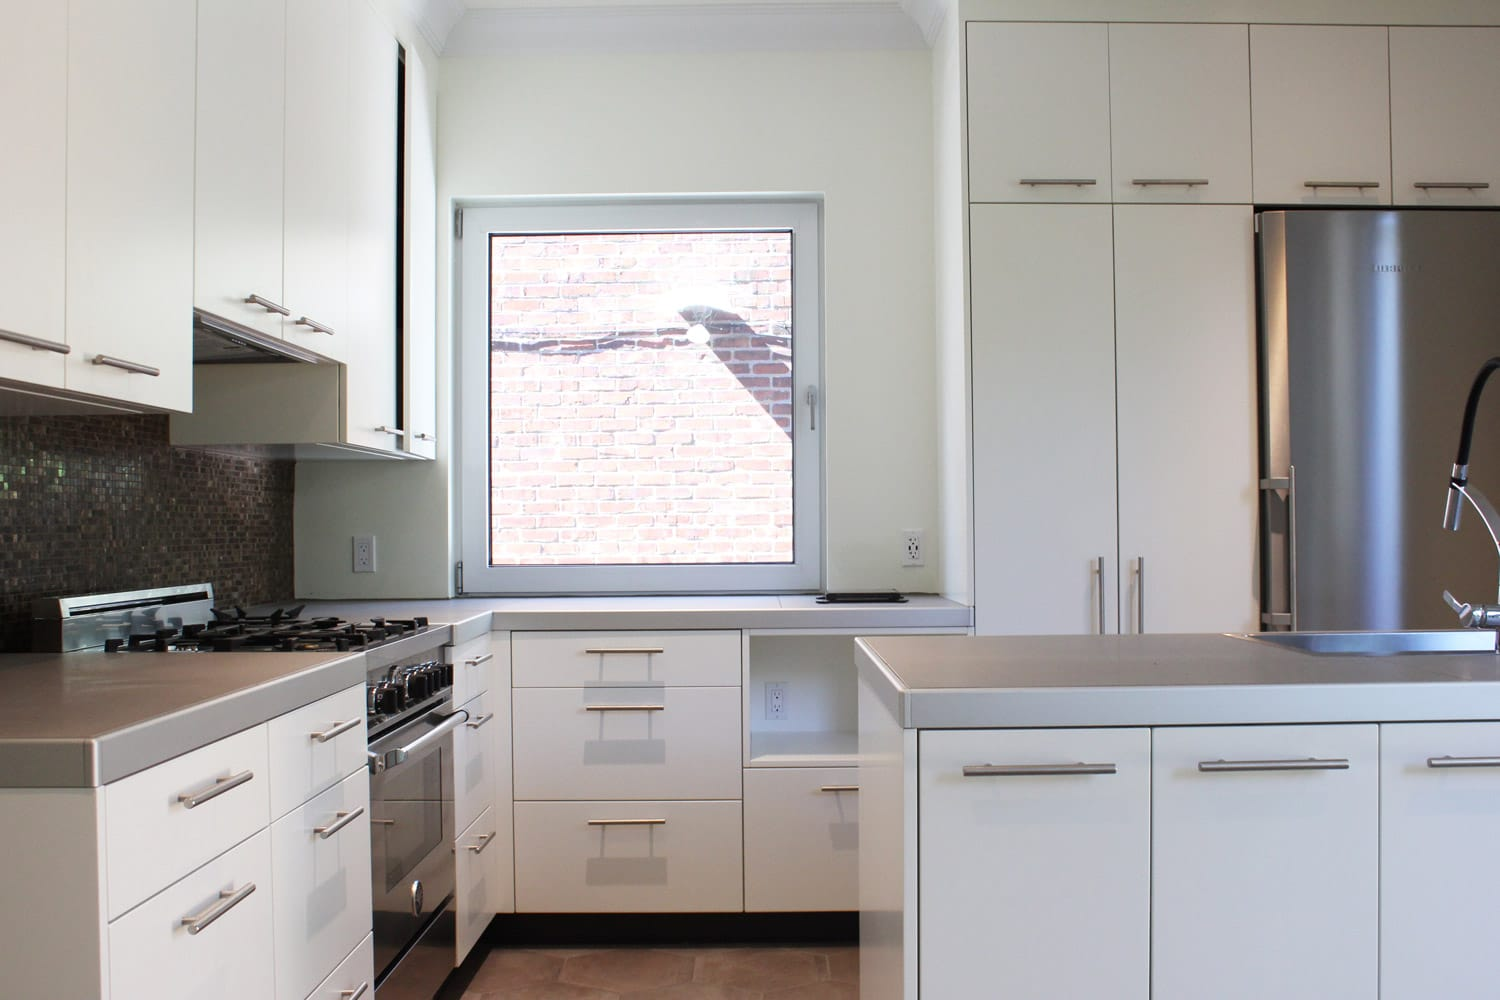 Cuisine Blanche Renovation Modernes Idees A